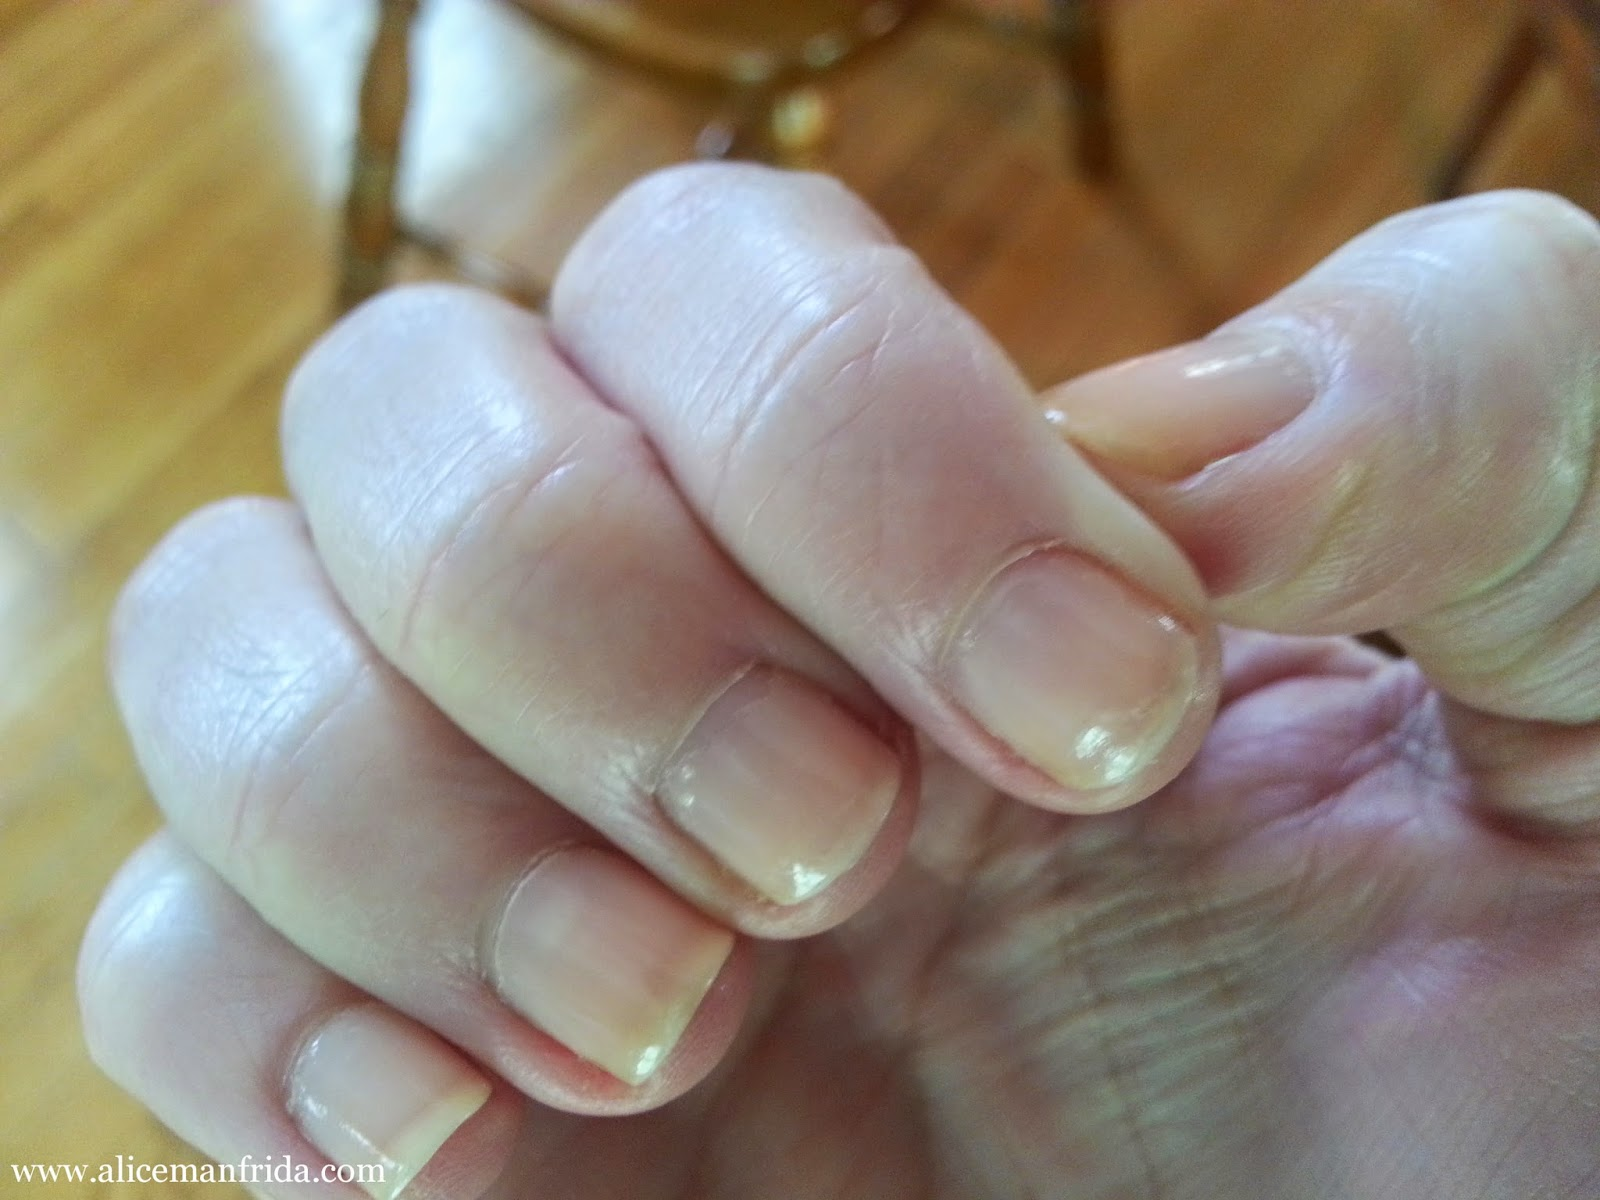 damaged nails, manicure, dry nails, Sally Hansen Nail Rehab